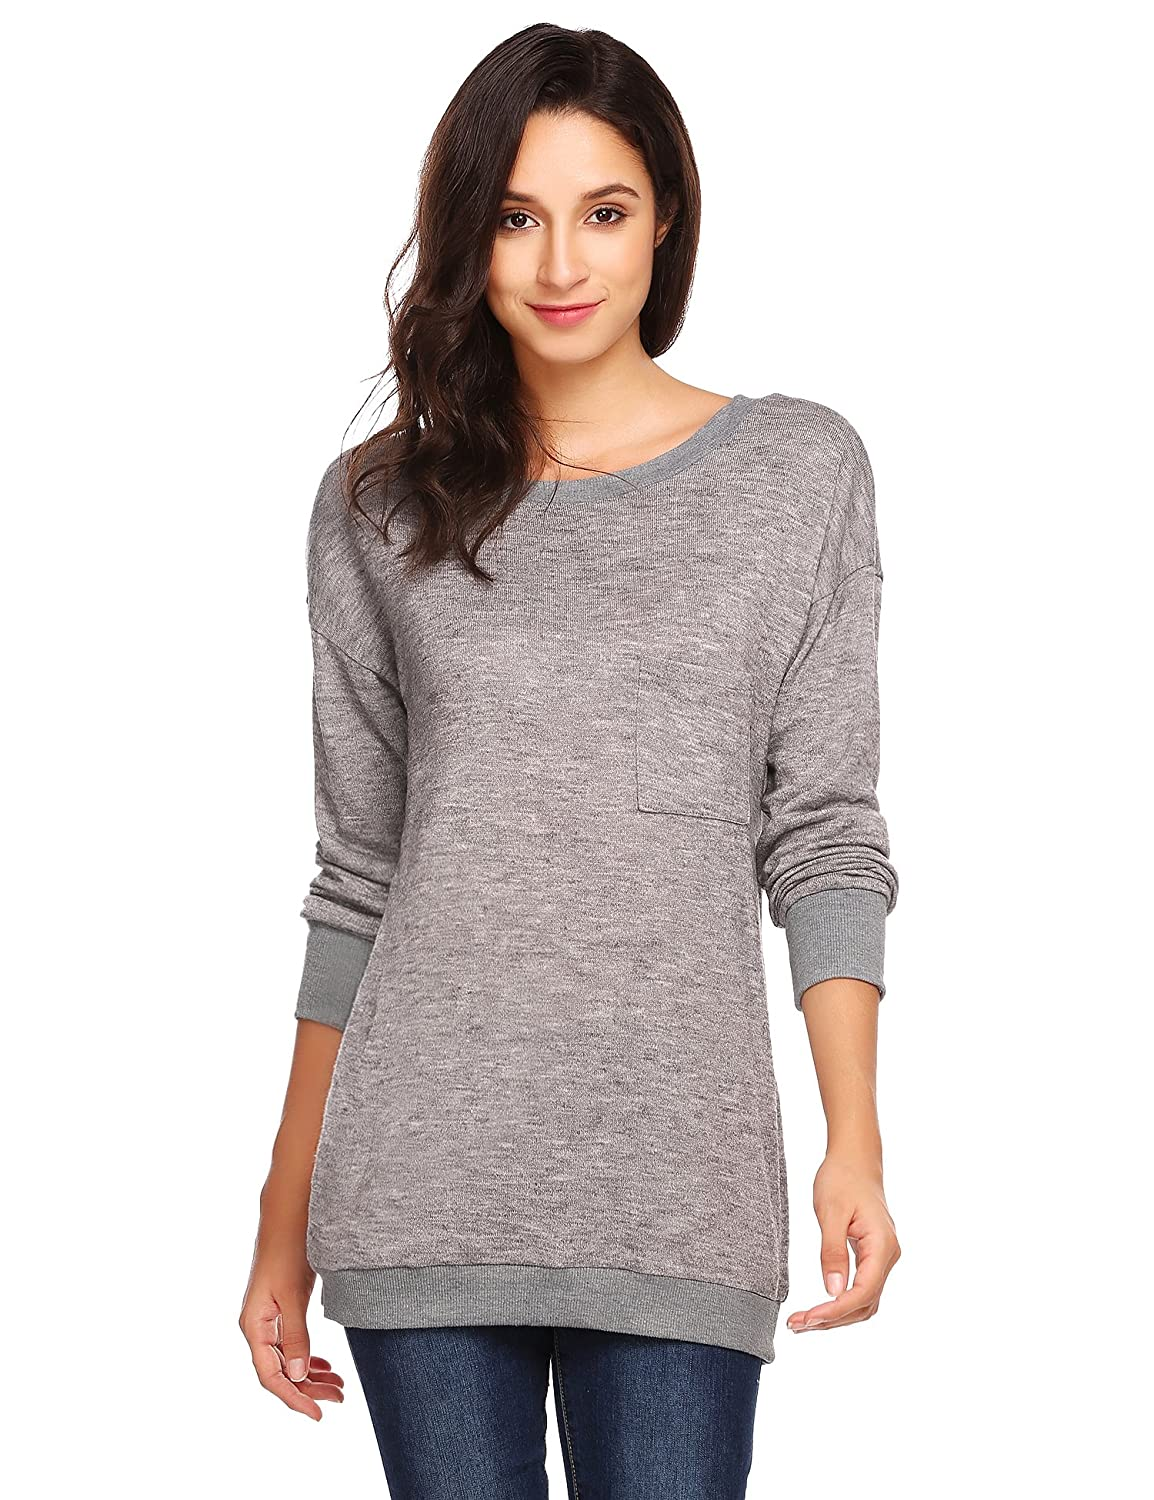 ELESOL Women's Casual Crew Neck Long Sleeve Loose Pullover Sweater with Pockets ELV005625